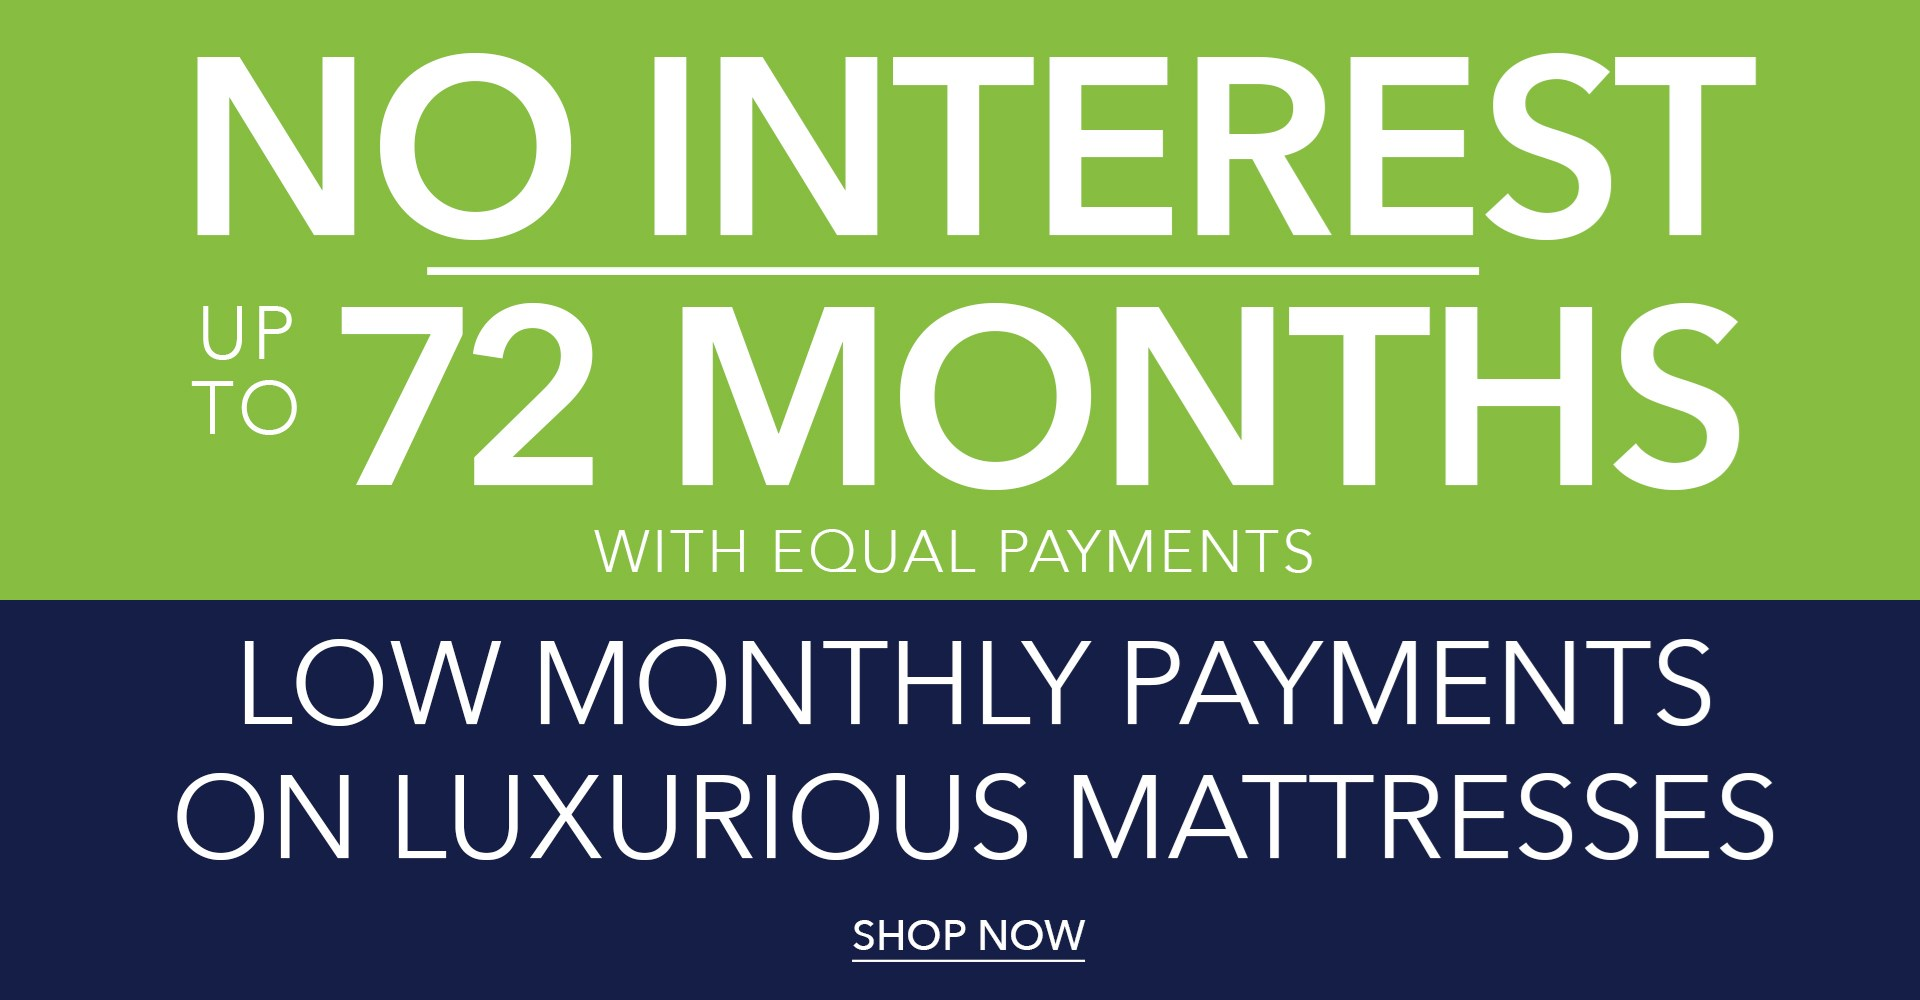 Up to 72 Months No Interest